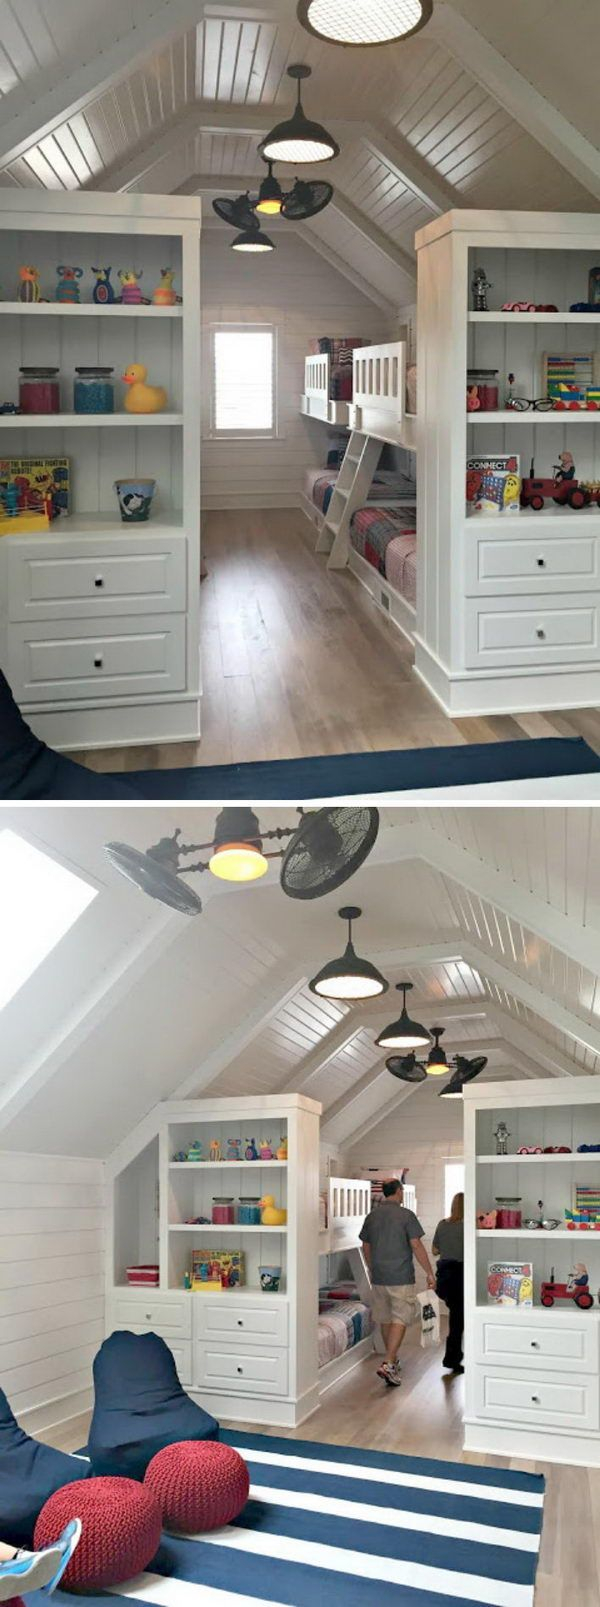 Built in loft bed ideas   Quick Tips for Organizing Your Bedroom  Attic Bunk bed and